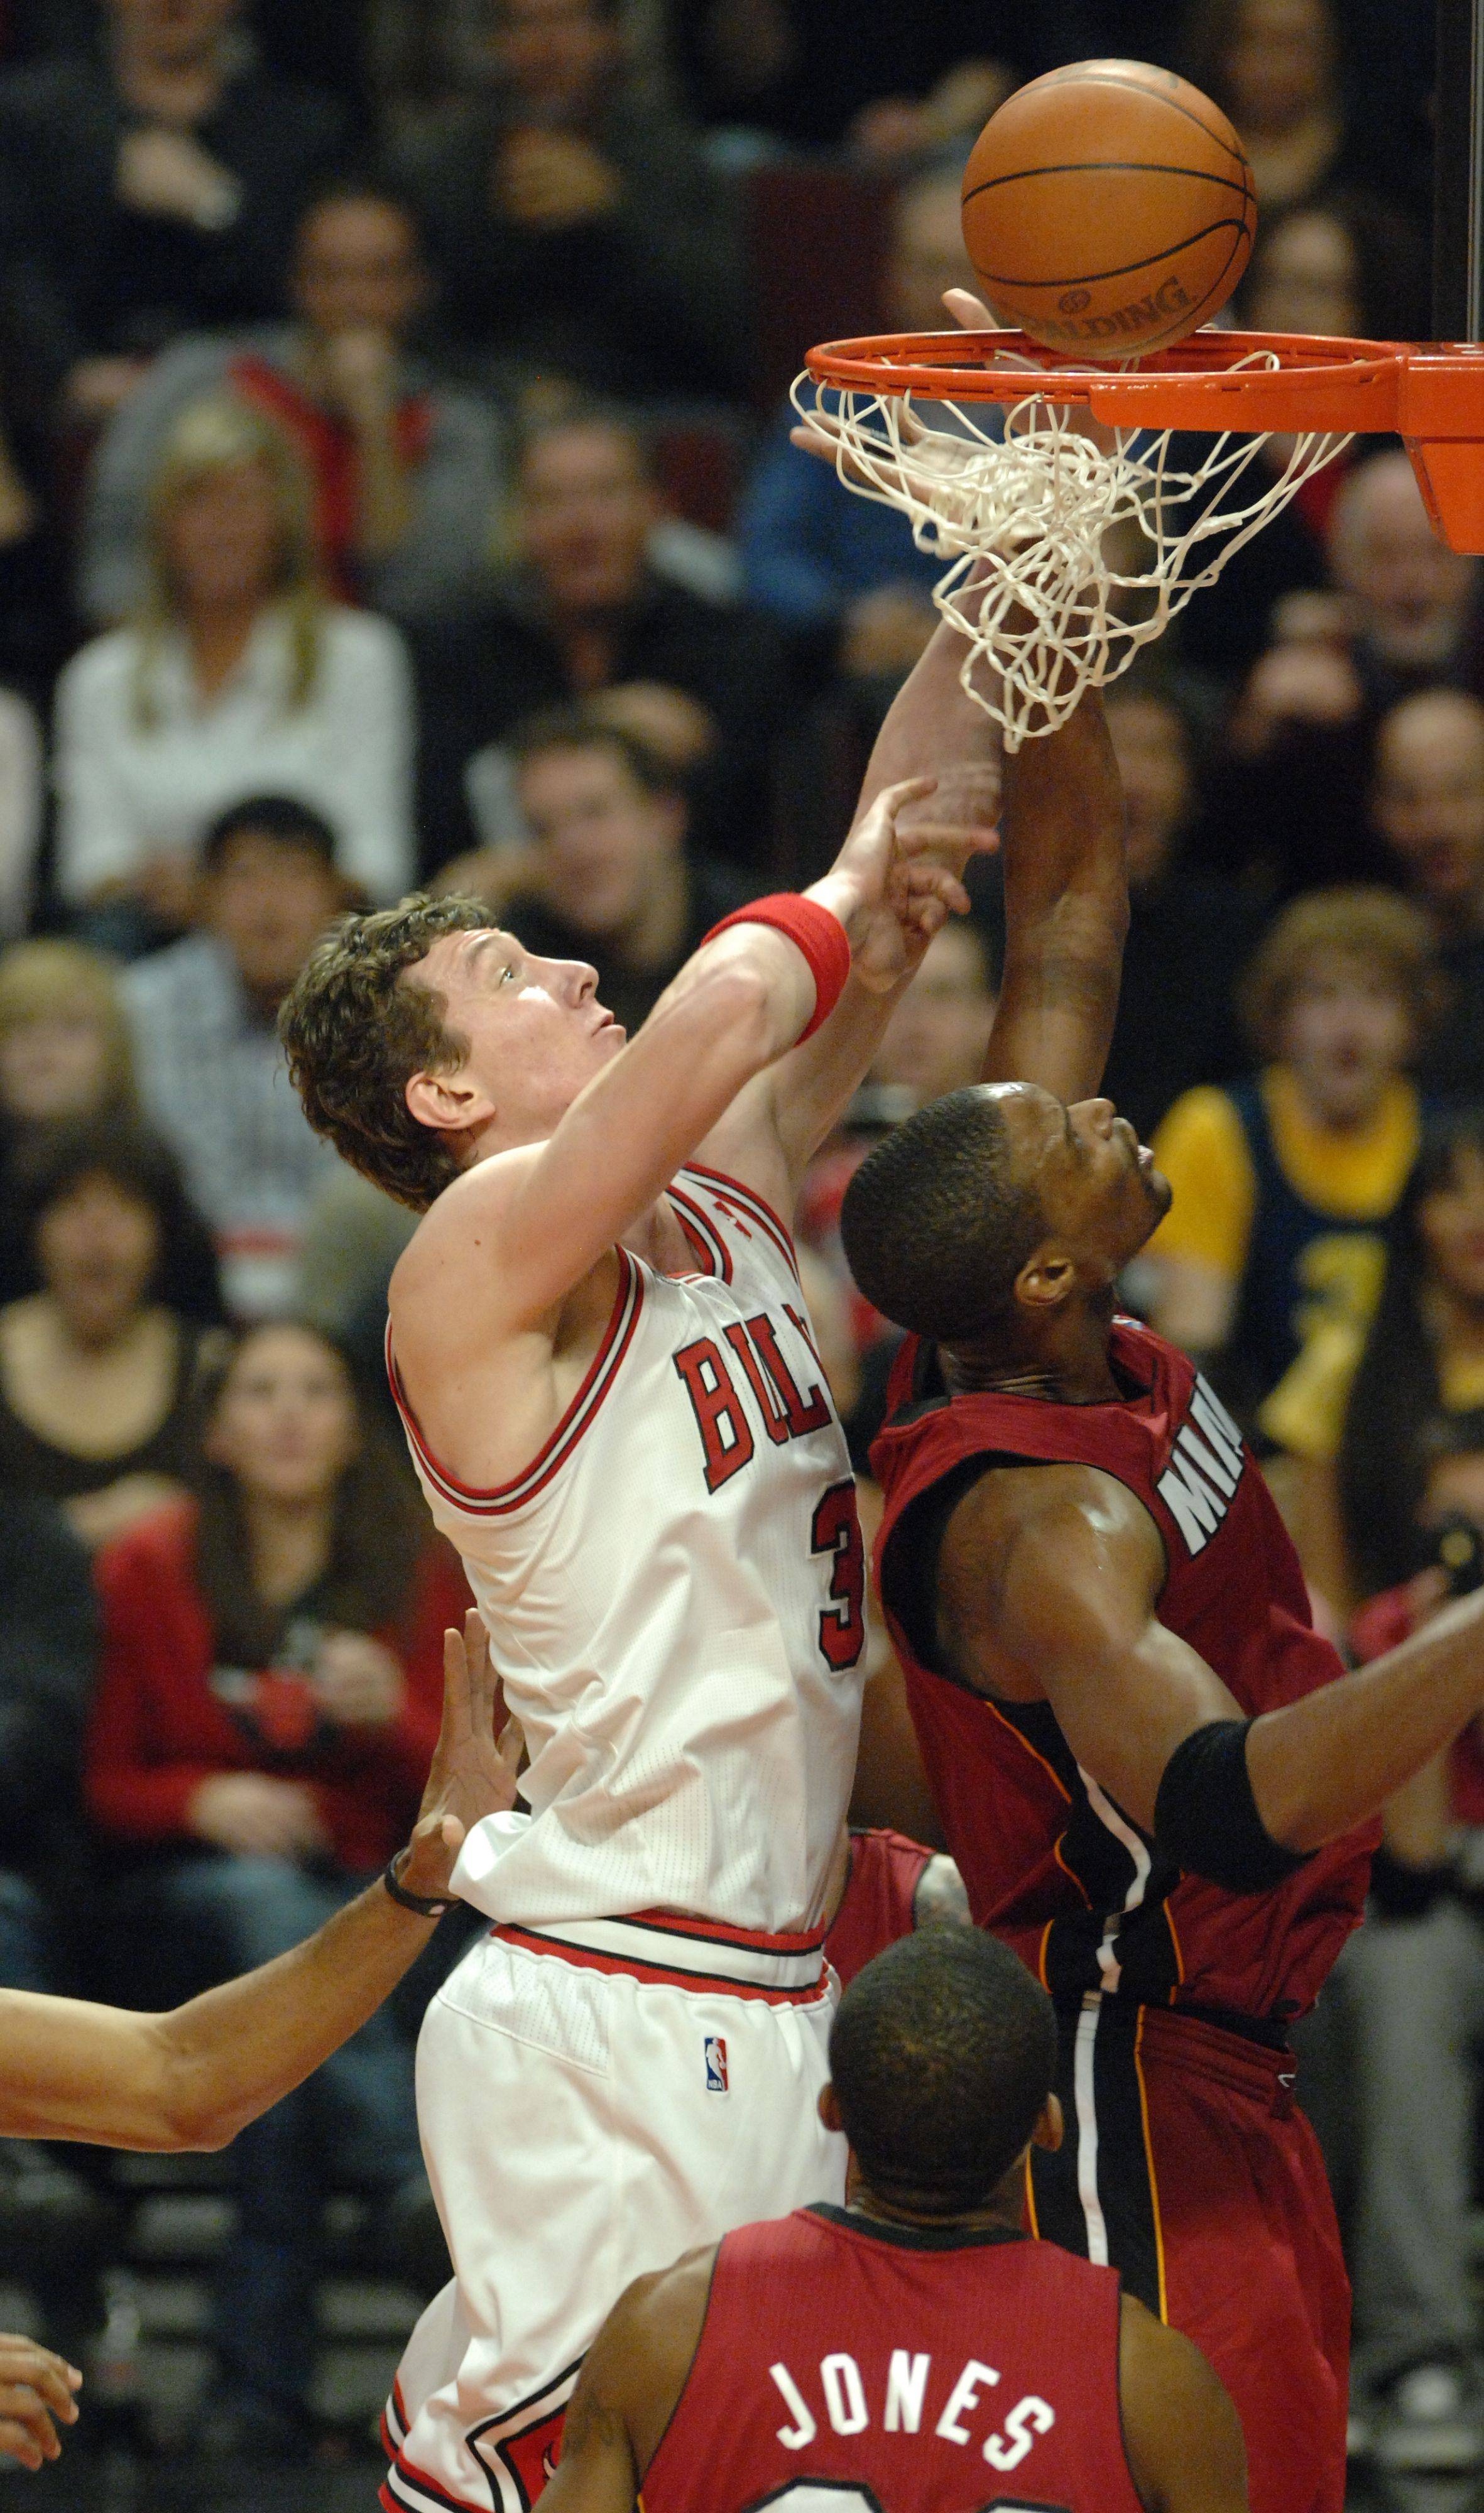 Chicago Bulls center Omer Asik (3) drives to the basket in the fourth quarter during Saturday's game at the United Center against the Miami Heat